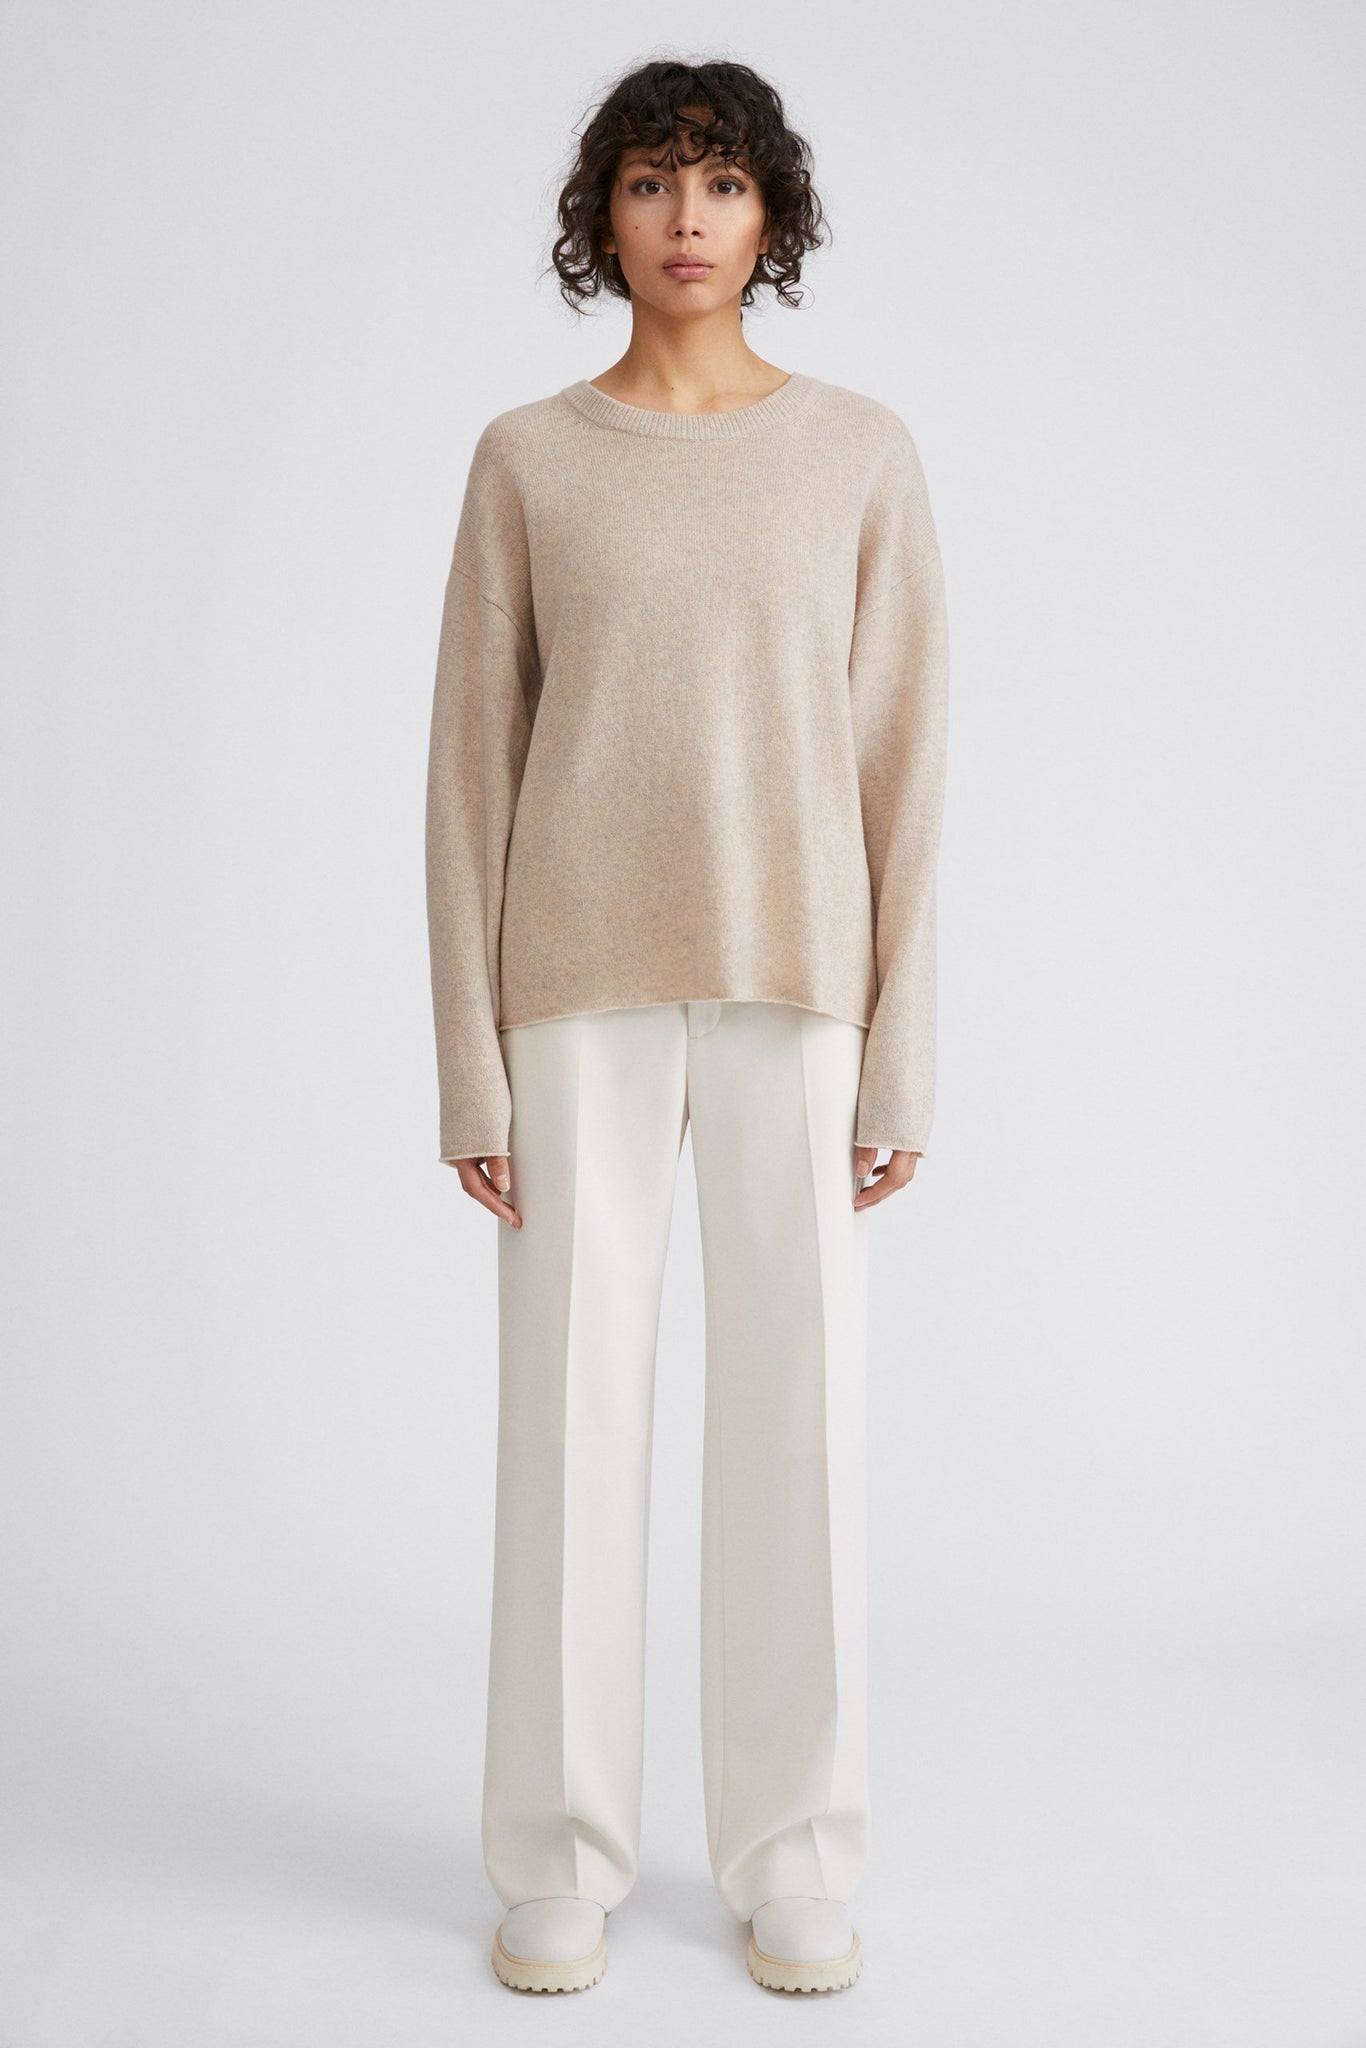 FILIPPA K LINA SWEATER IN SAND BEIGE MELANGE